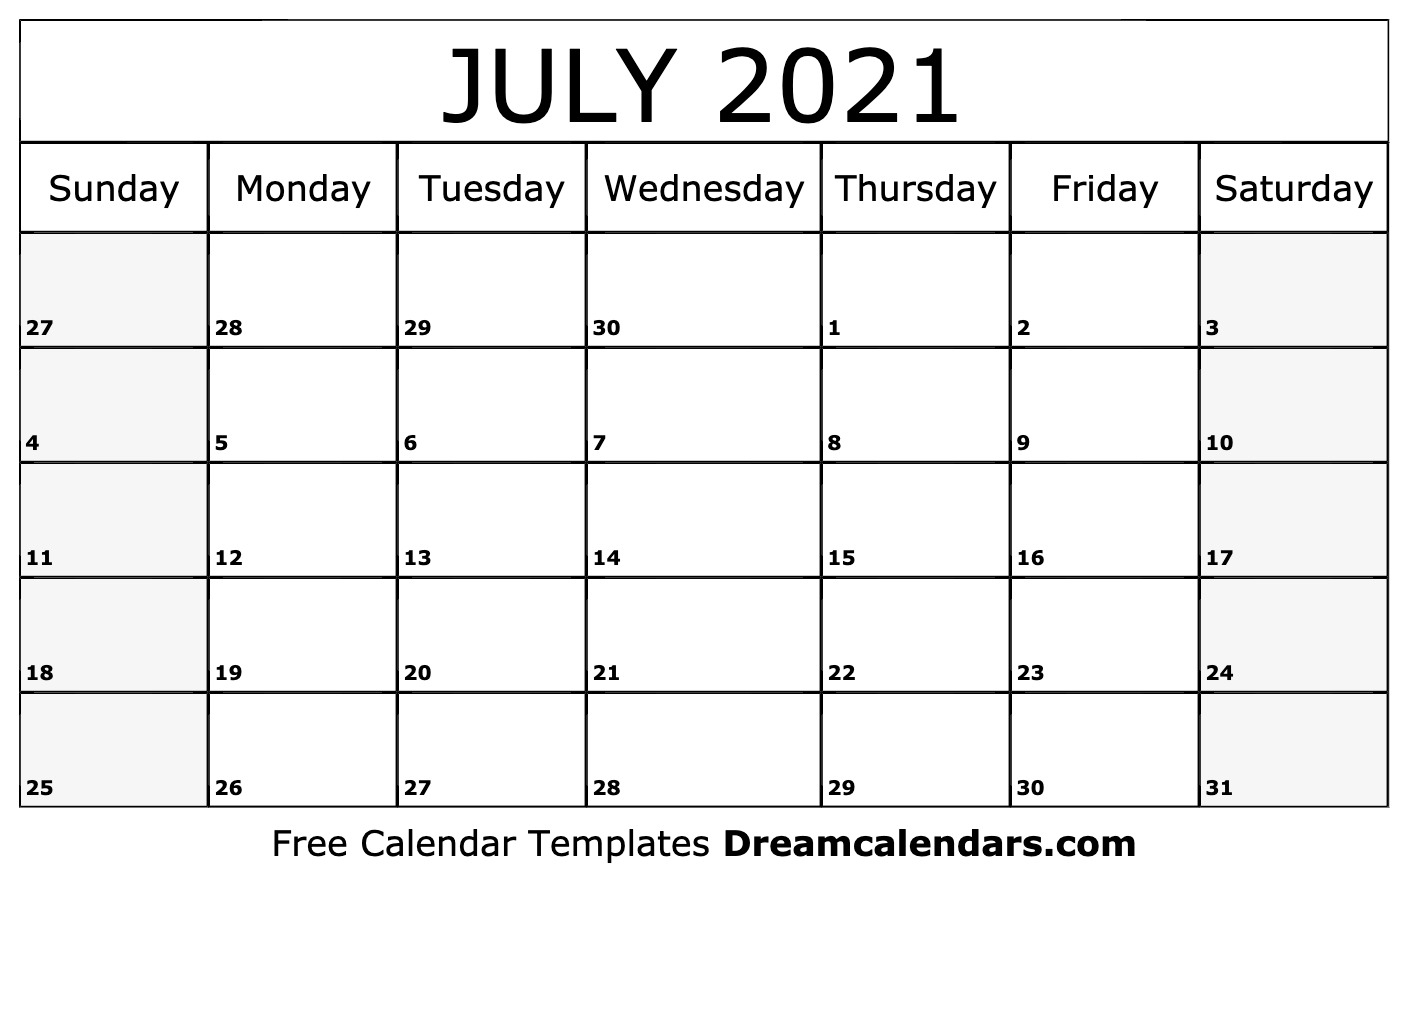 July 2021 Calendar Free Blank Printable Templates